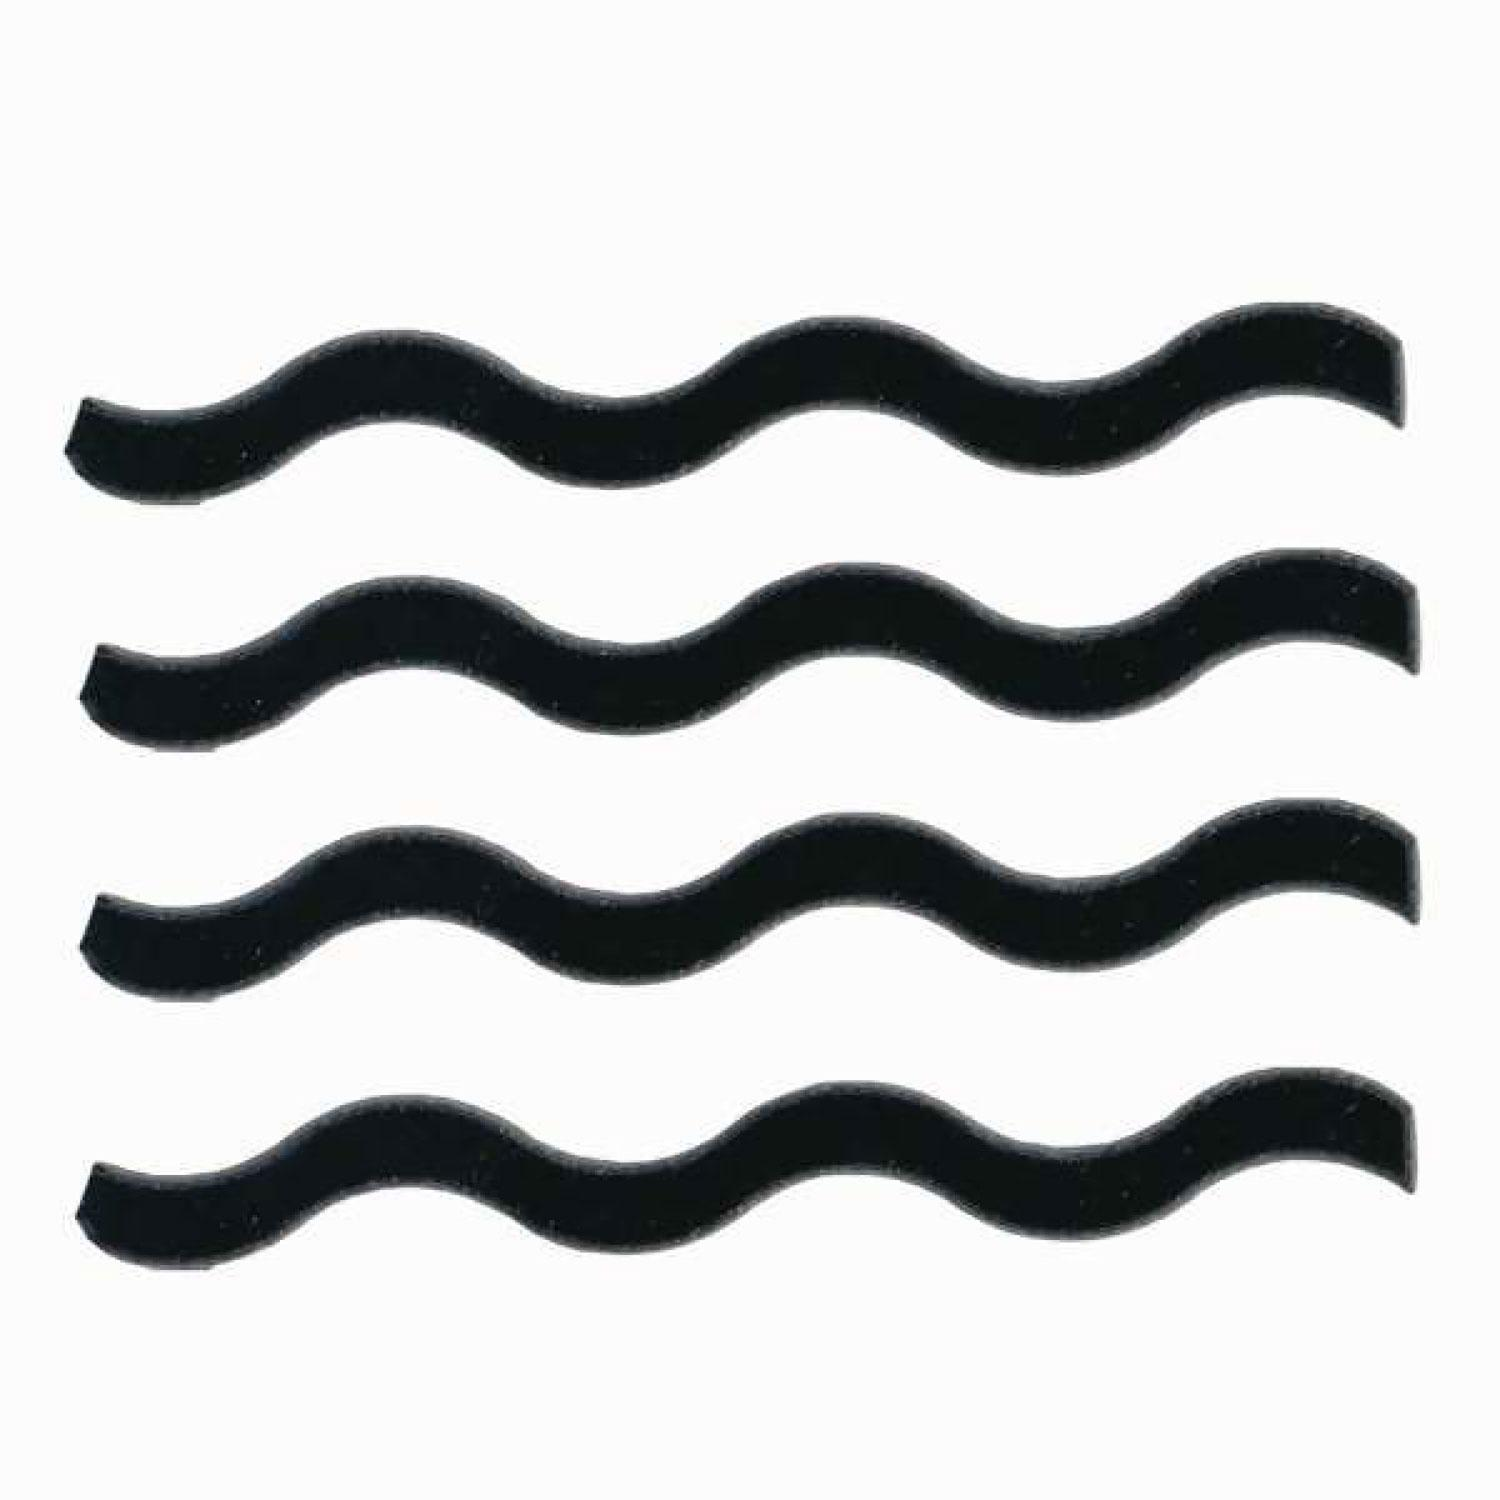 Black Squiggles Fusible Pre-Cut 4 Pack - 96 COE